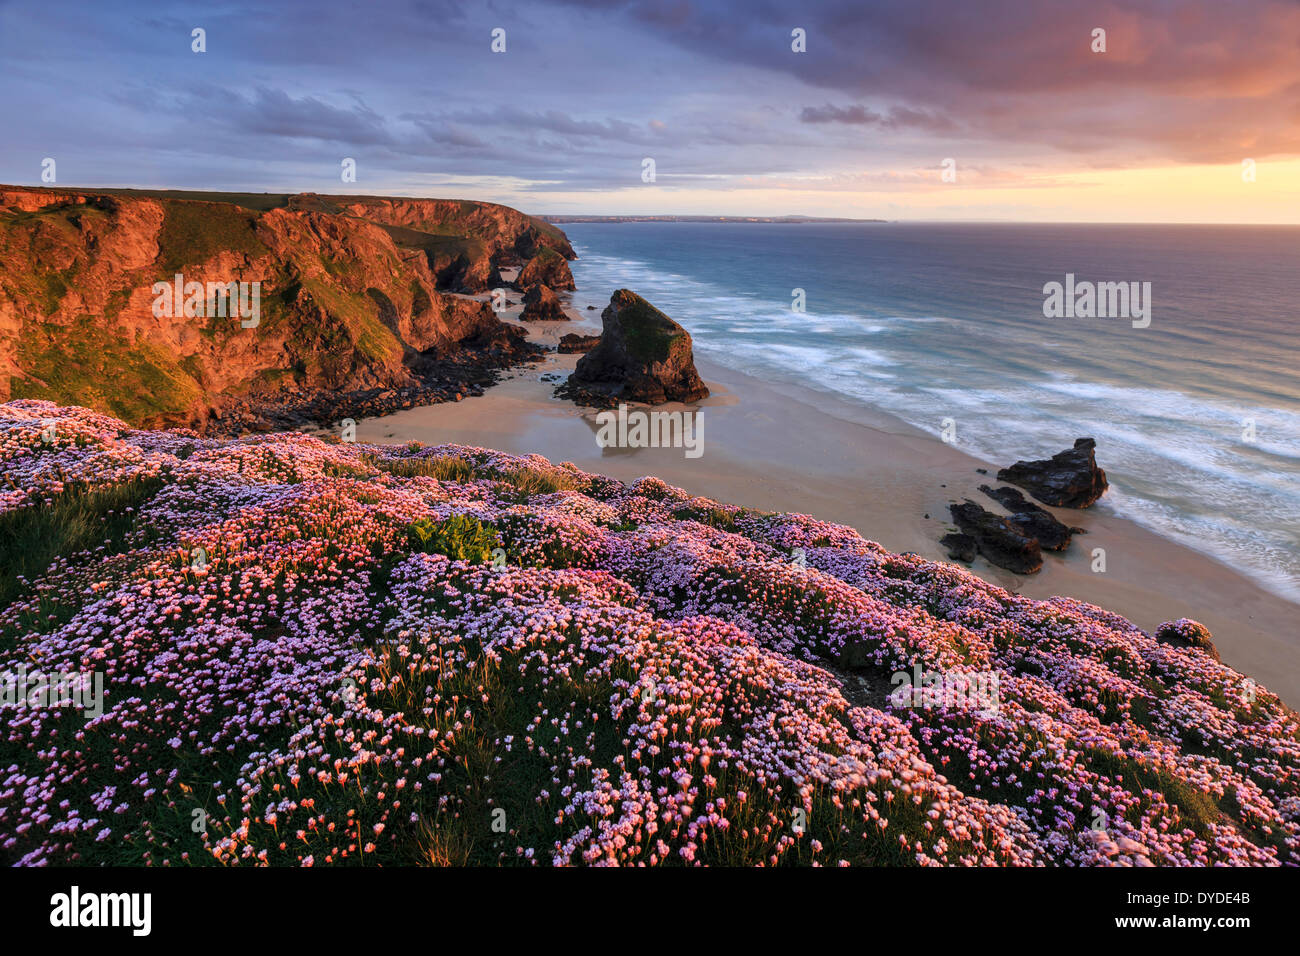 Sunset from the cliff top at Bedruthan Steps in Cornwall with thrift in the foreground. - Stock Image